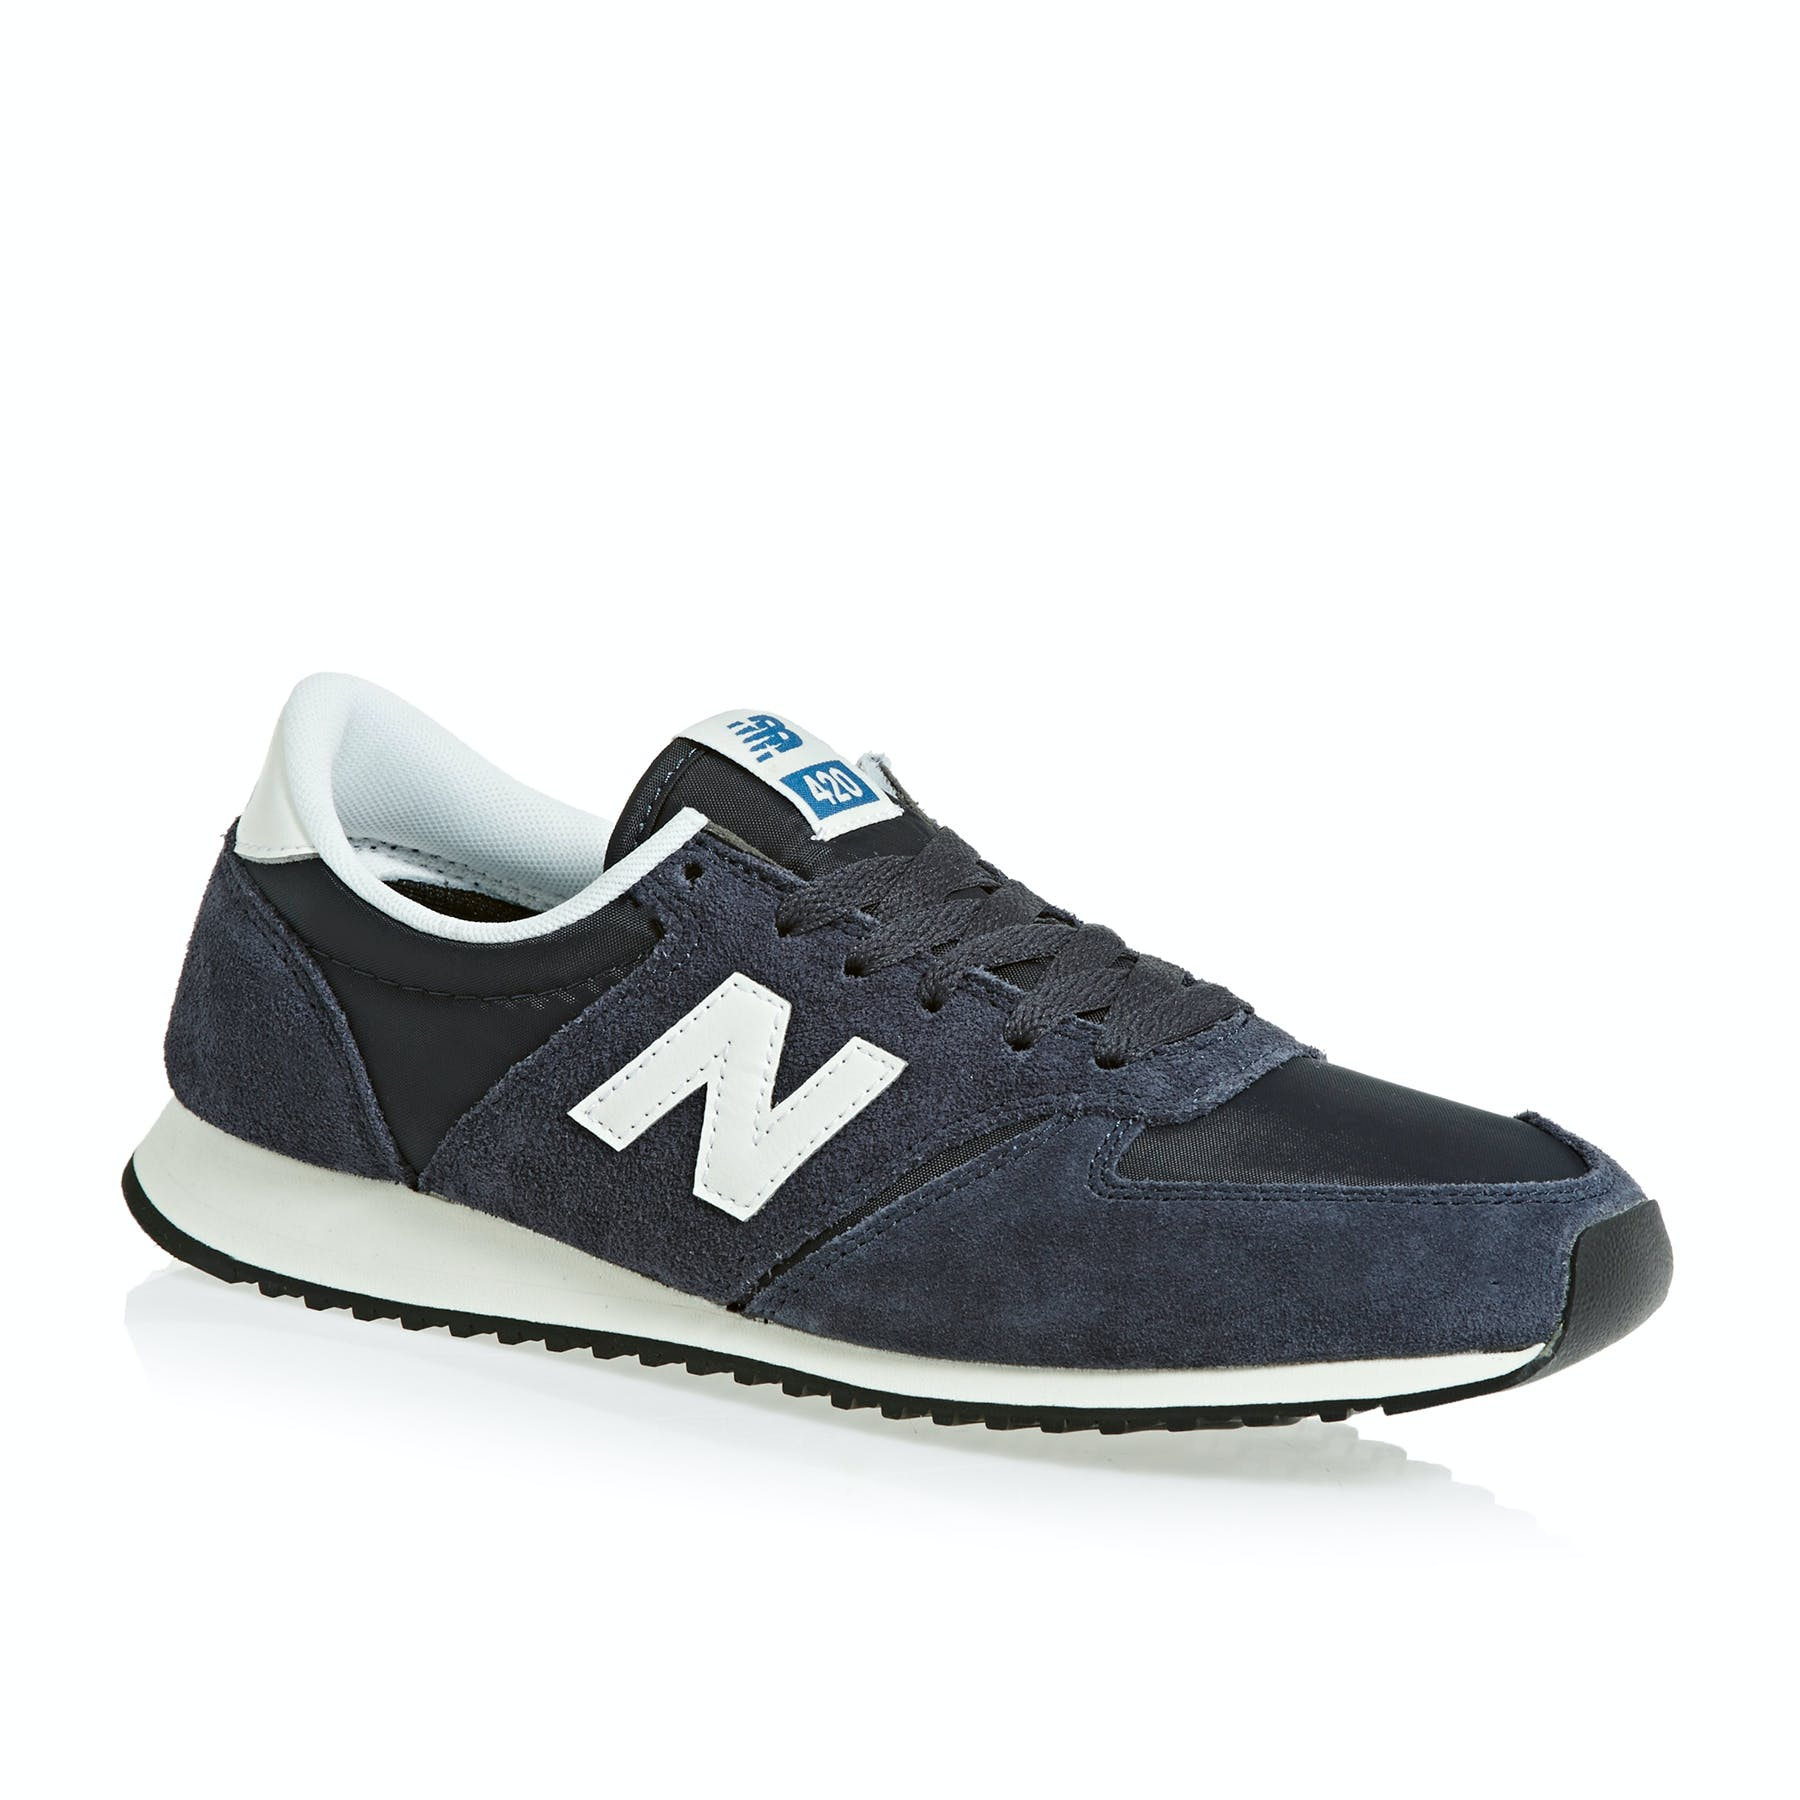 100% authentique b6e97 b33e1 New Balance U420 Shoes - Free Delivery options on All Orders from Surfdome  UK